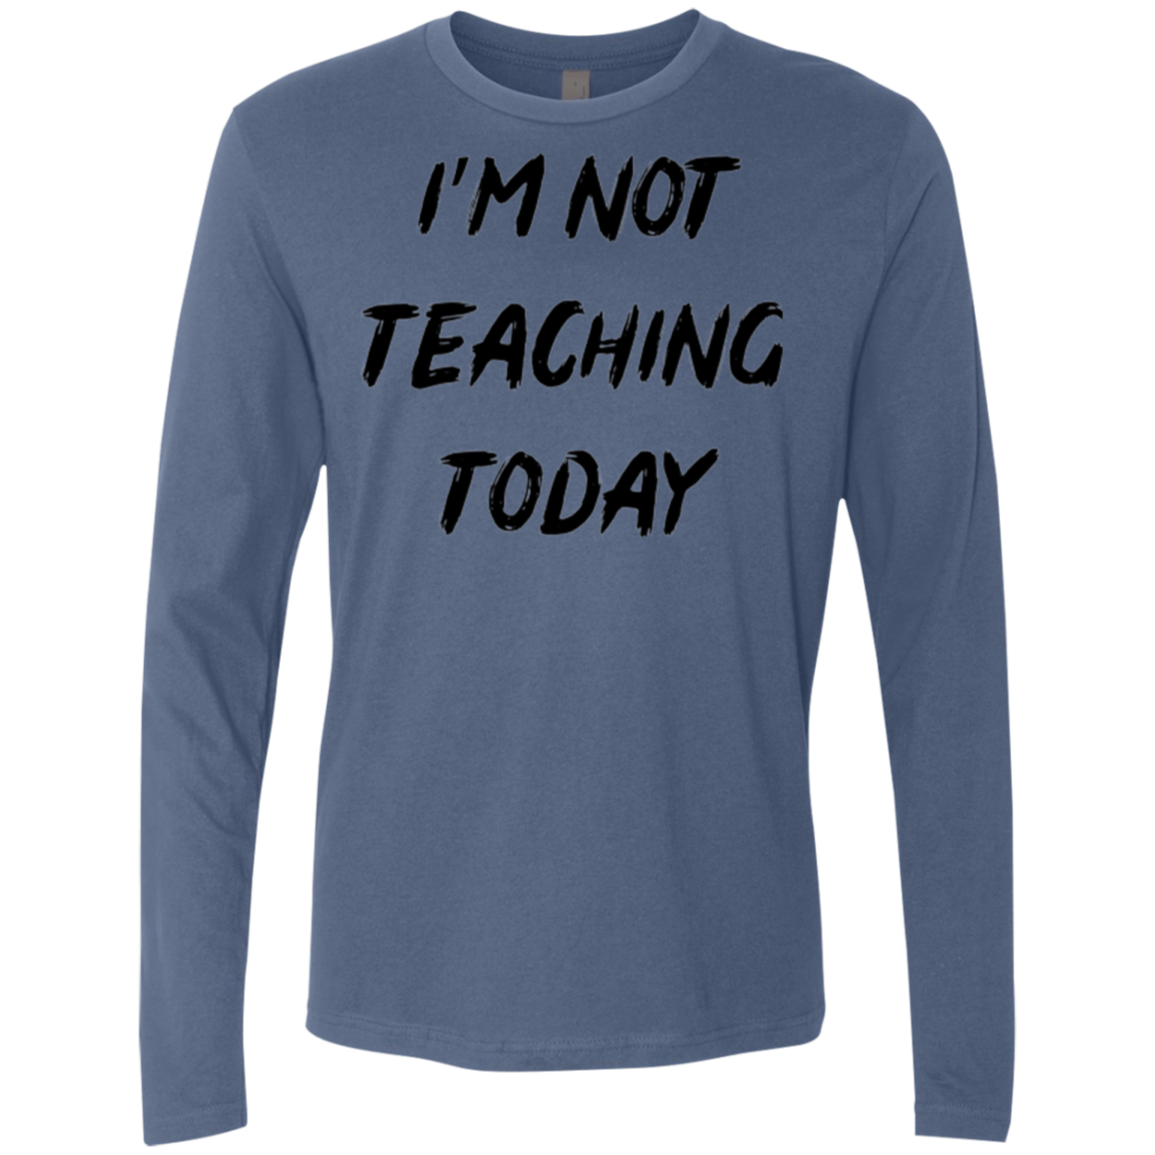 I'm Not Teaching Today Men's Long Sleeve Tee - Trendy Tees